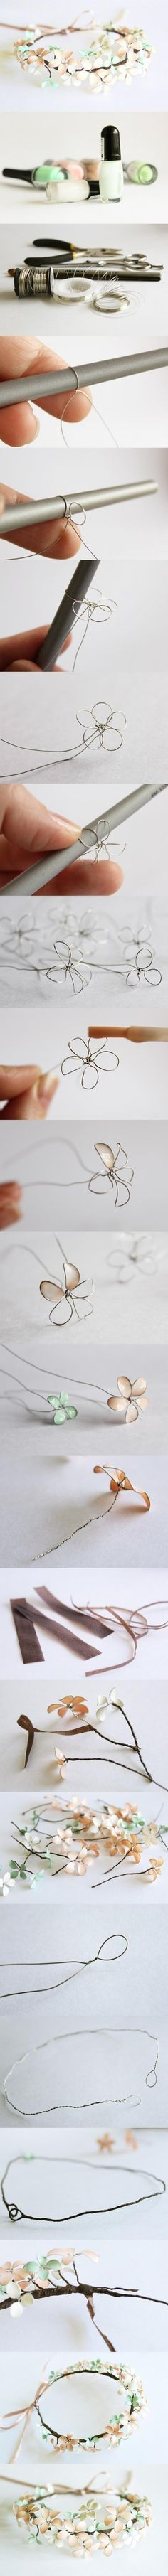 Nail Polish and Wire Flowers! Pinned by www.SimpleNailArtTips.com SIMPLE NAIL ART DESIGN IDEAS - This is so beautiful!!!! #nails #nailart #flowers #naildesigns #crafty #craftideas #beauty #hair